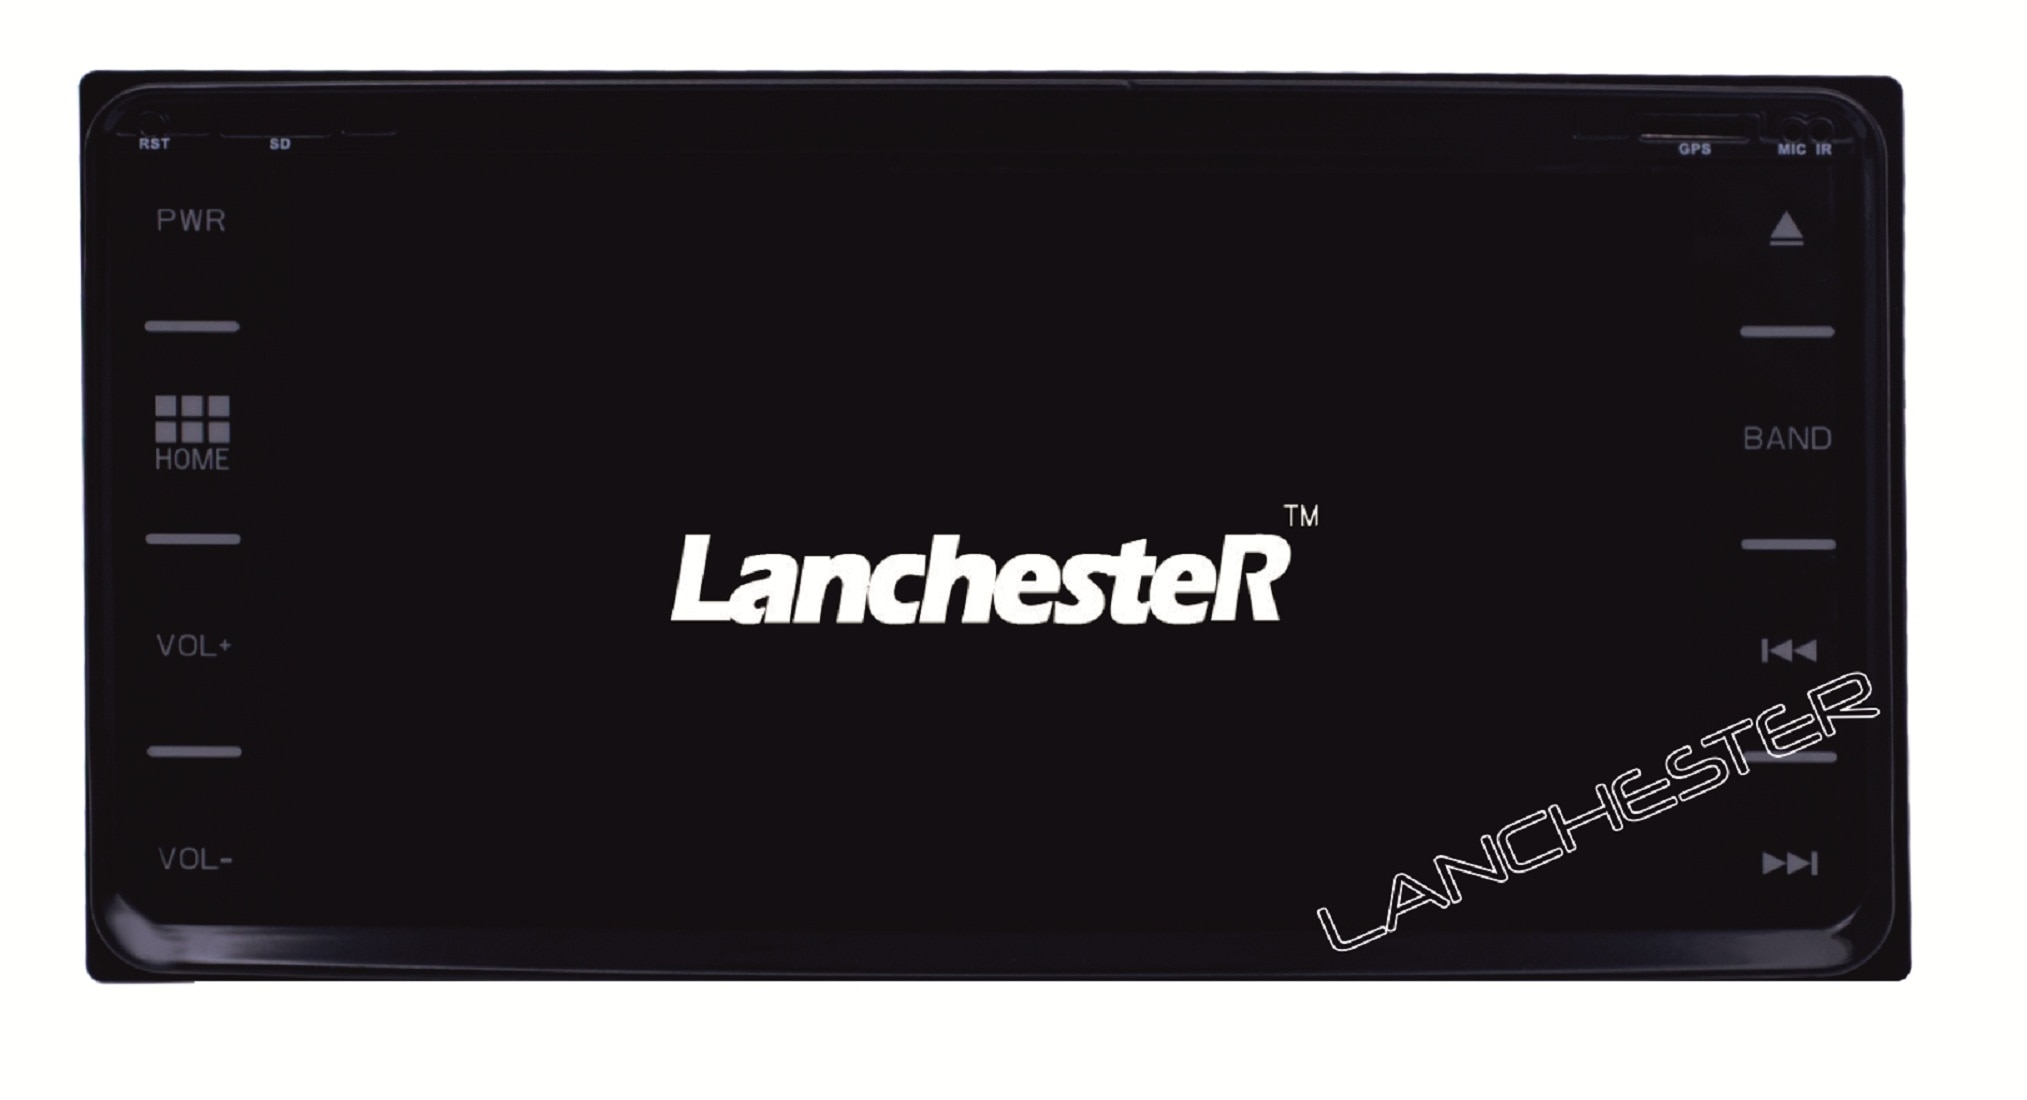 Lanchester Toyota Innova Crysta 6.95 Inch Android 6.0 Marshmallow Navigation System With 1GB RAM 16 GB ROM